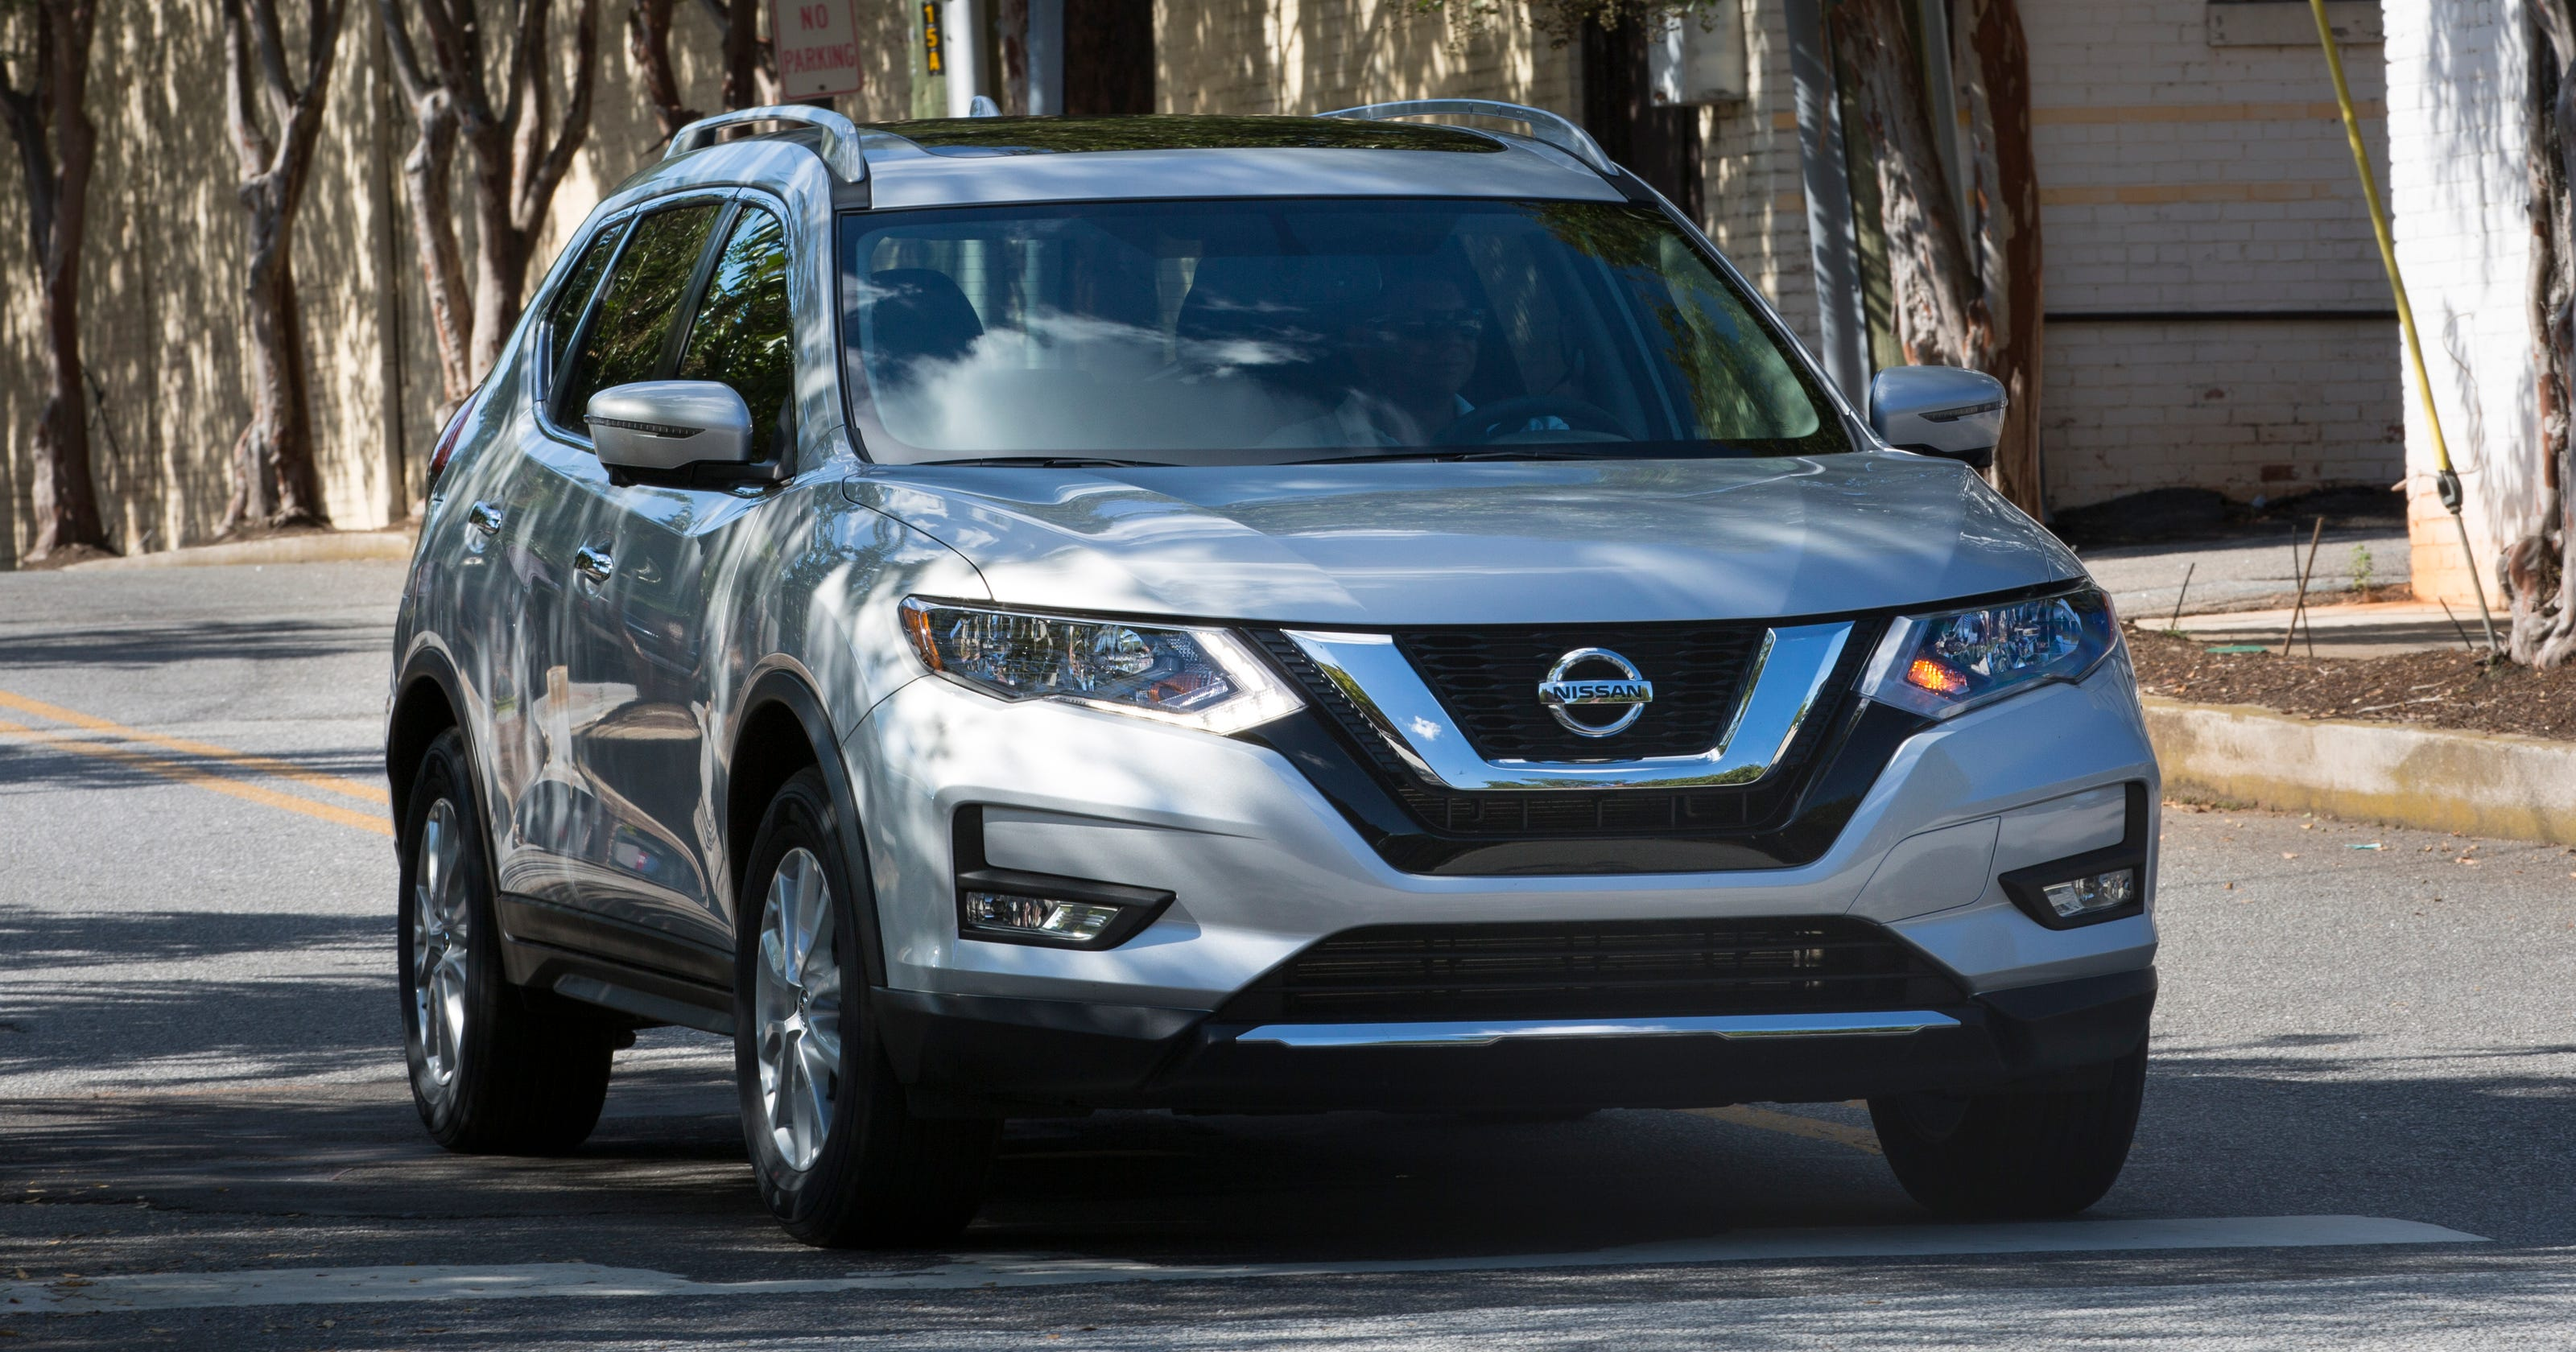 Nissan problems recall for 1.2 M vehicles, SUVs with back-up electronic camera flaw thumbnail